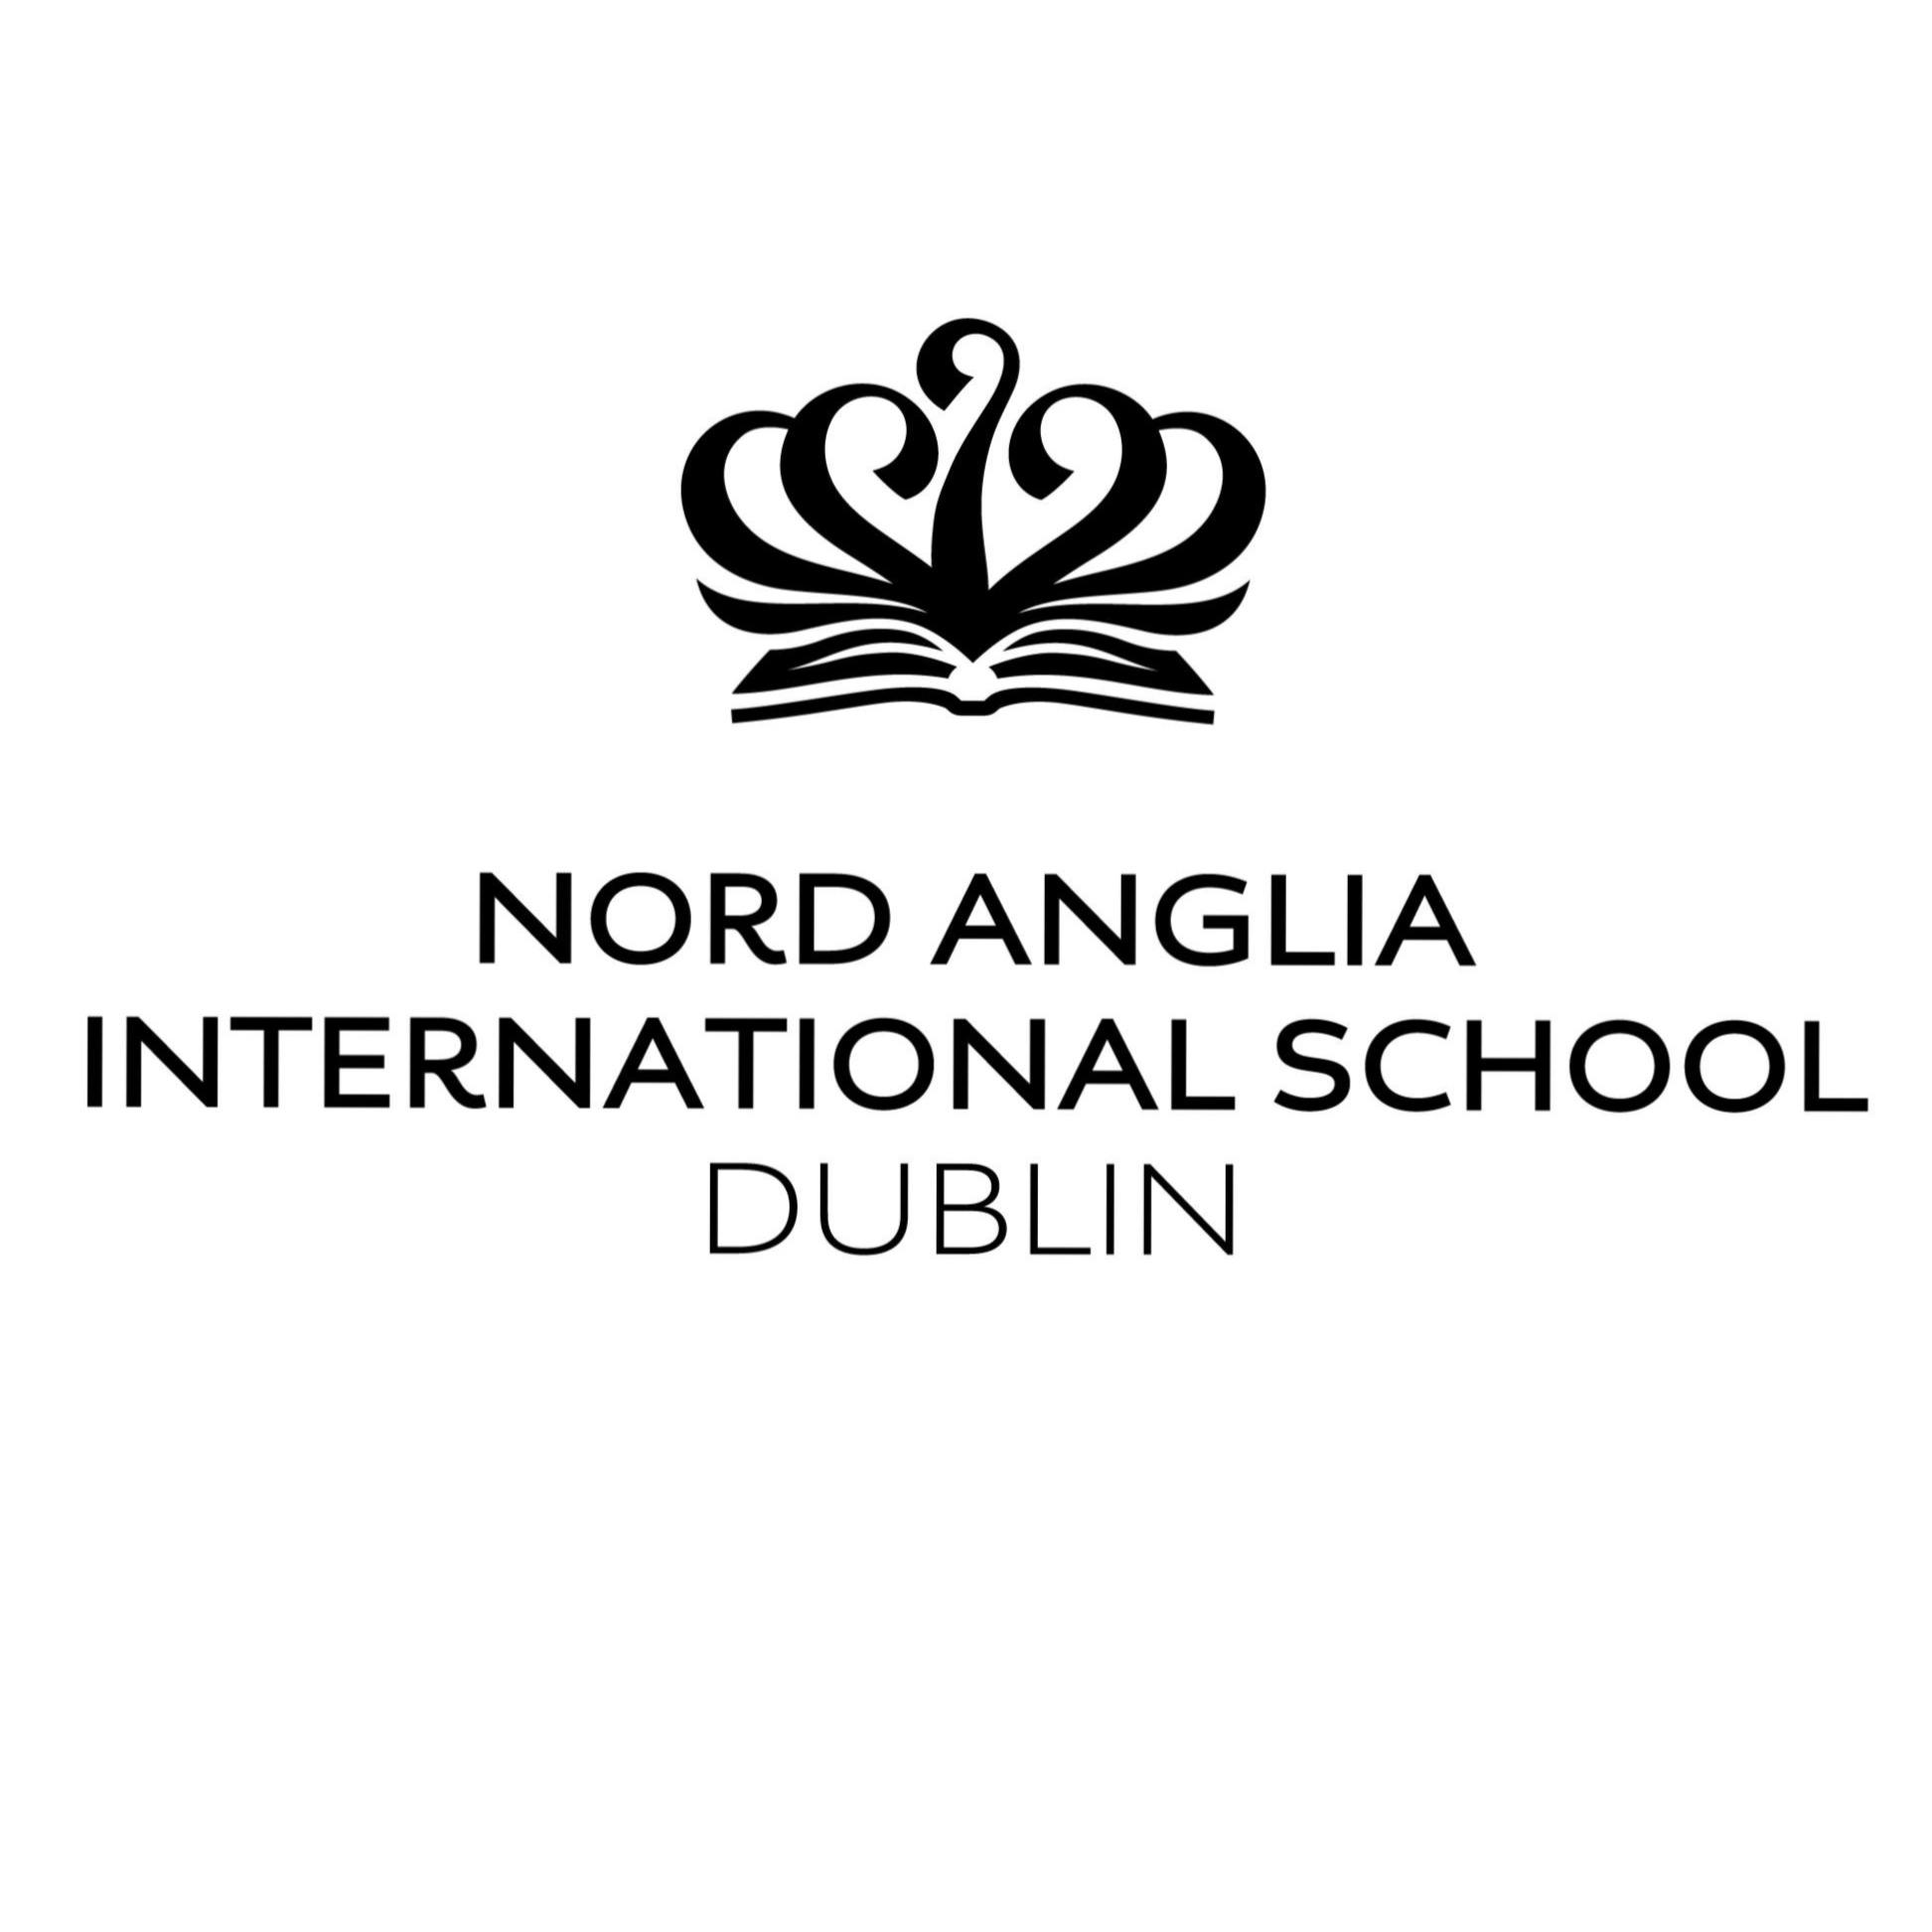 Nord Anglia International School, Dublin